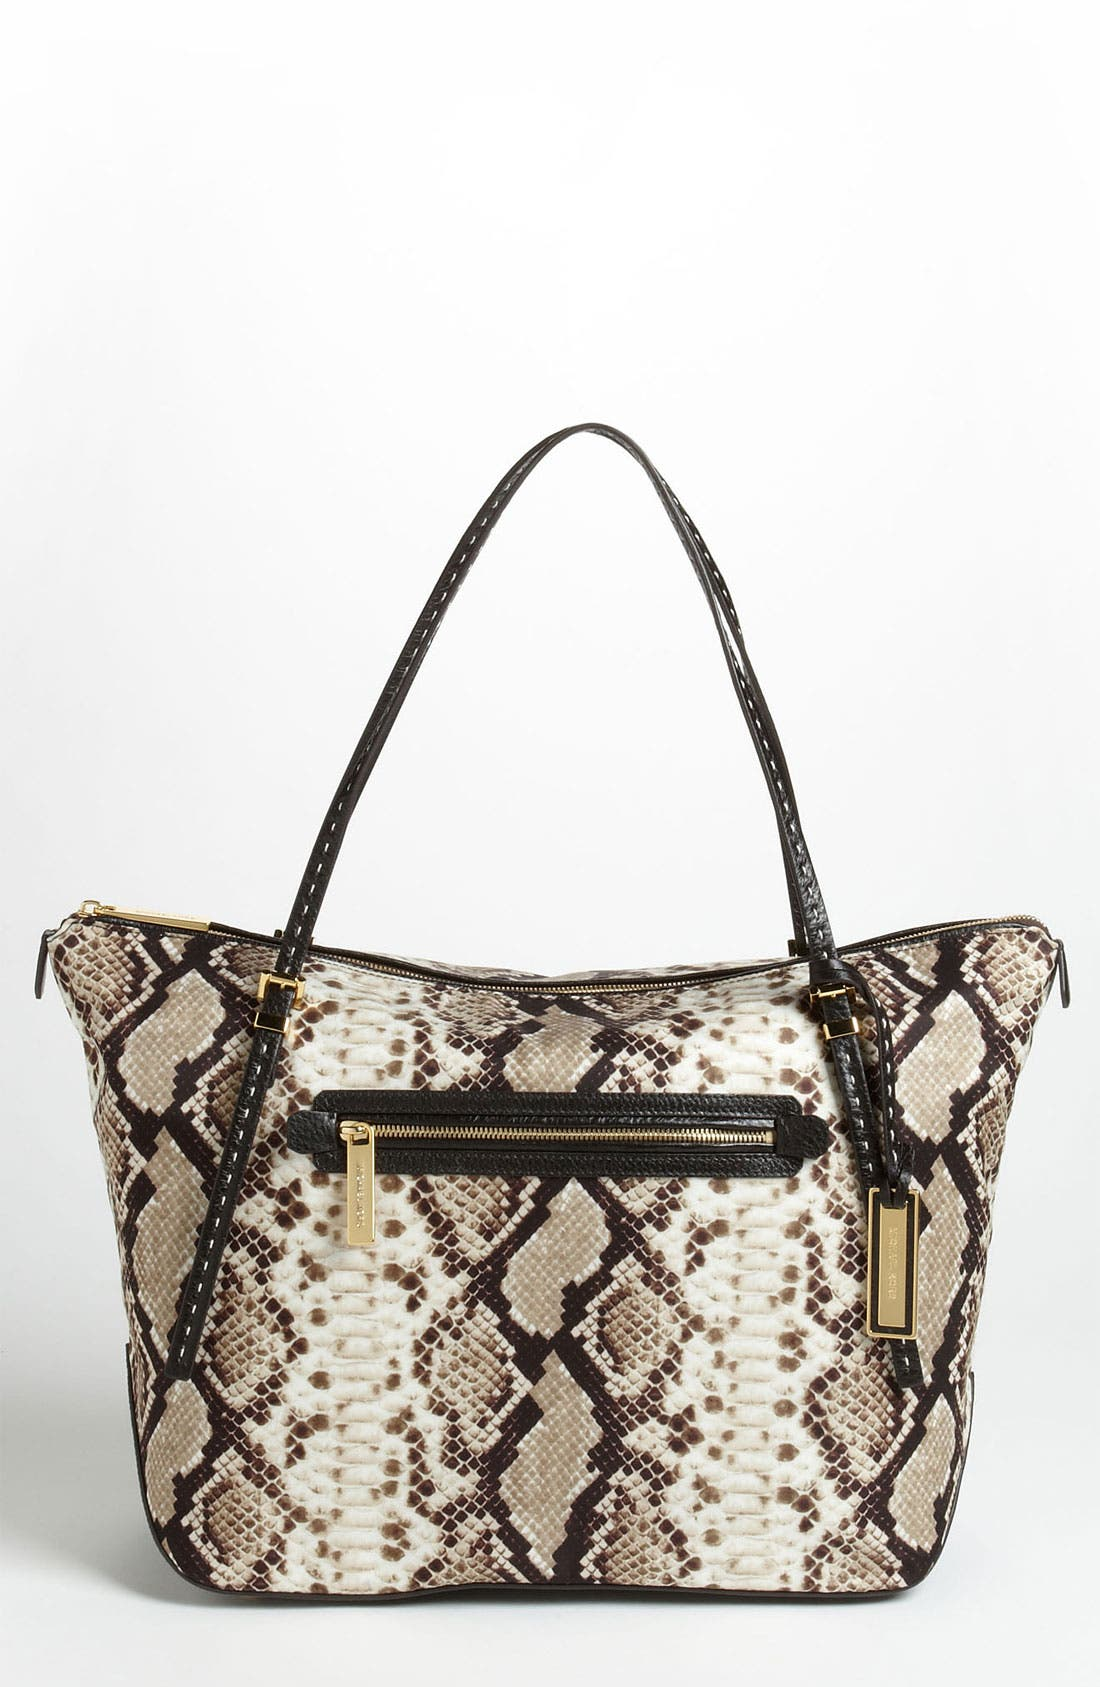 Alternate Image 1 Selected - Michael Kors 'Gia' Tote